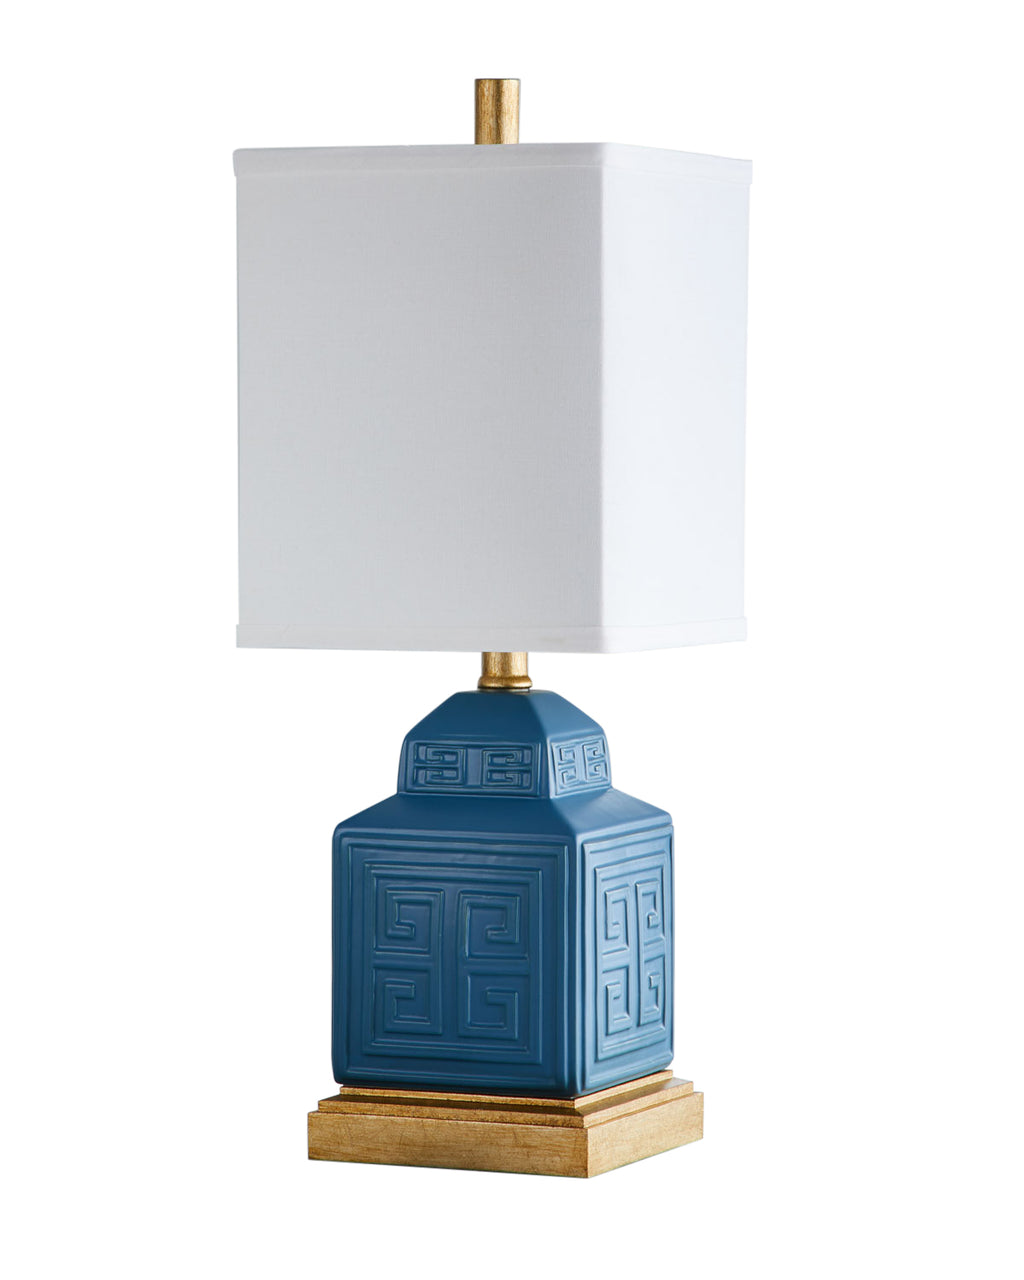 Menderes Table Lamp - NEW - Couture Lamps